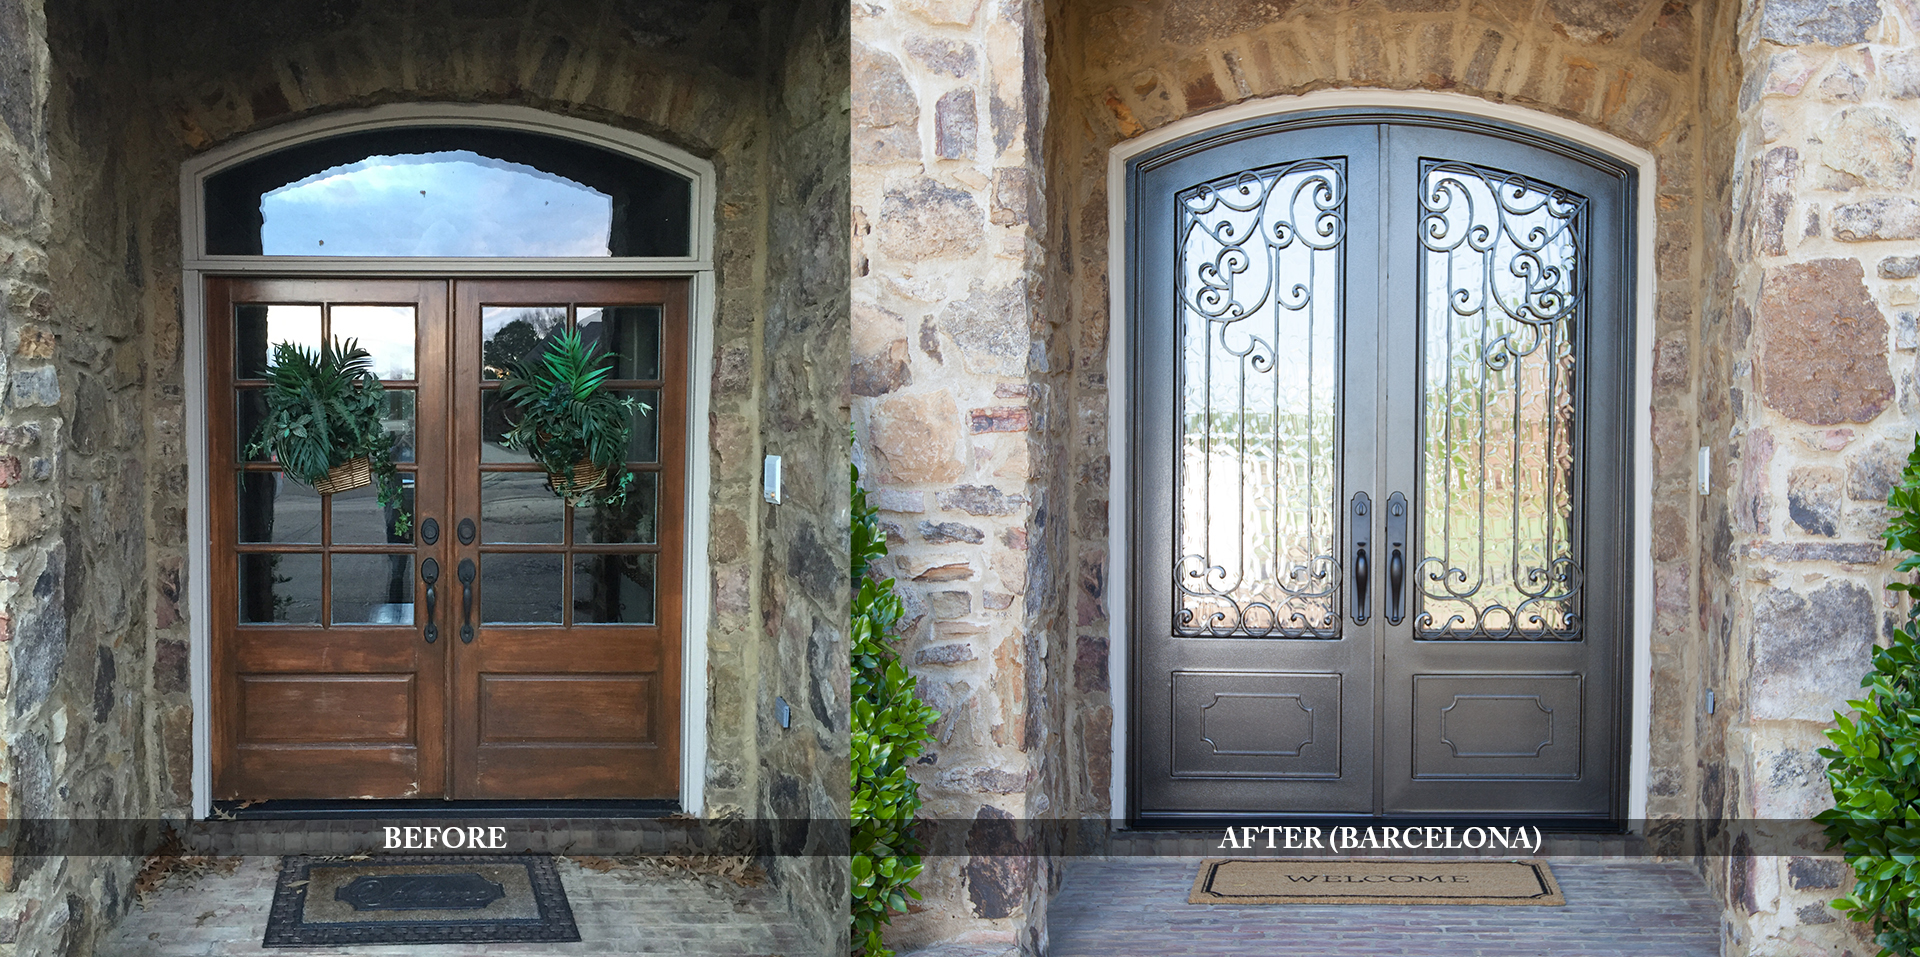 Upscale residential entry doors before and after comparison